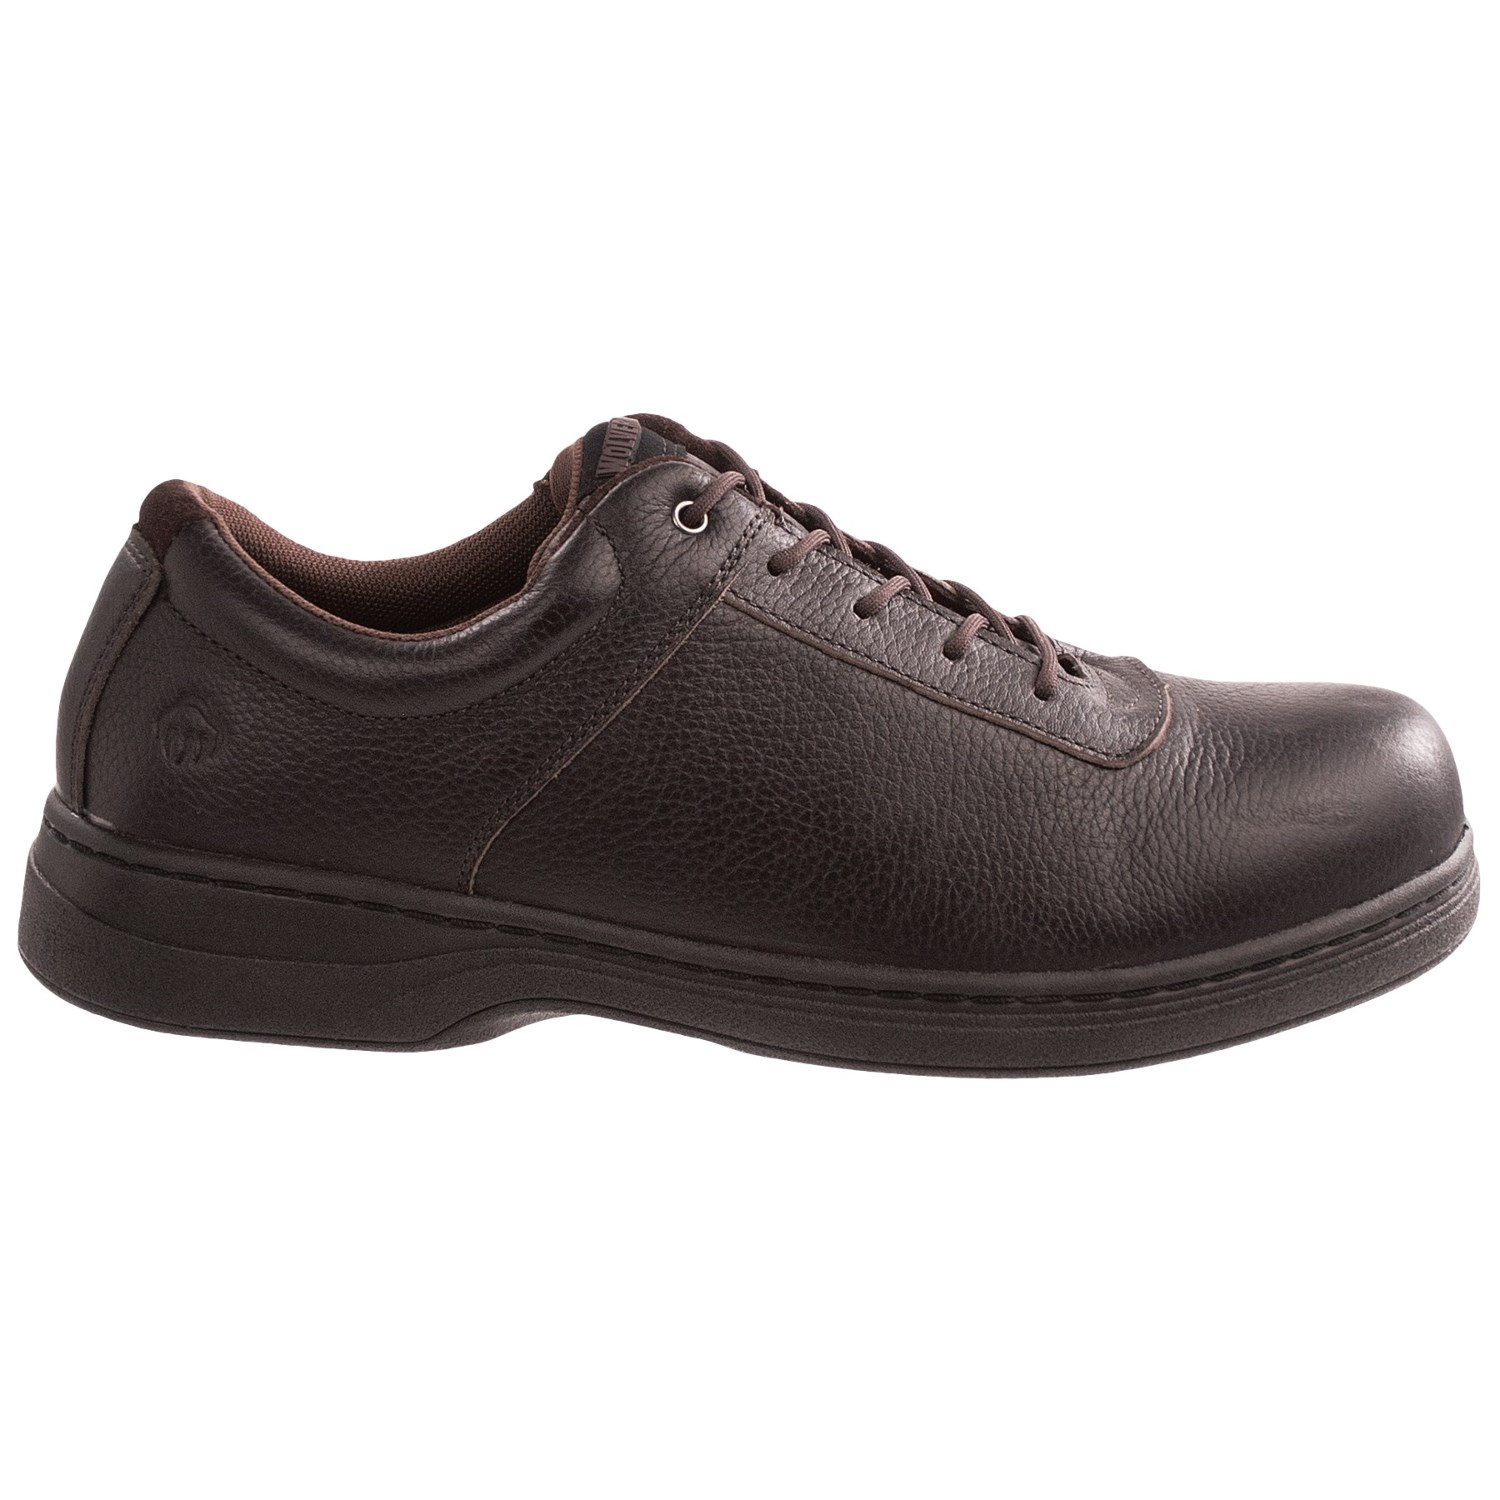 Wolverine Hume EPX Oxford Work Shoes (For Men) - Save 41%